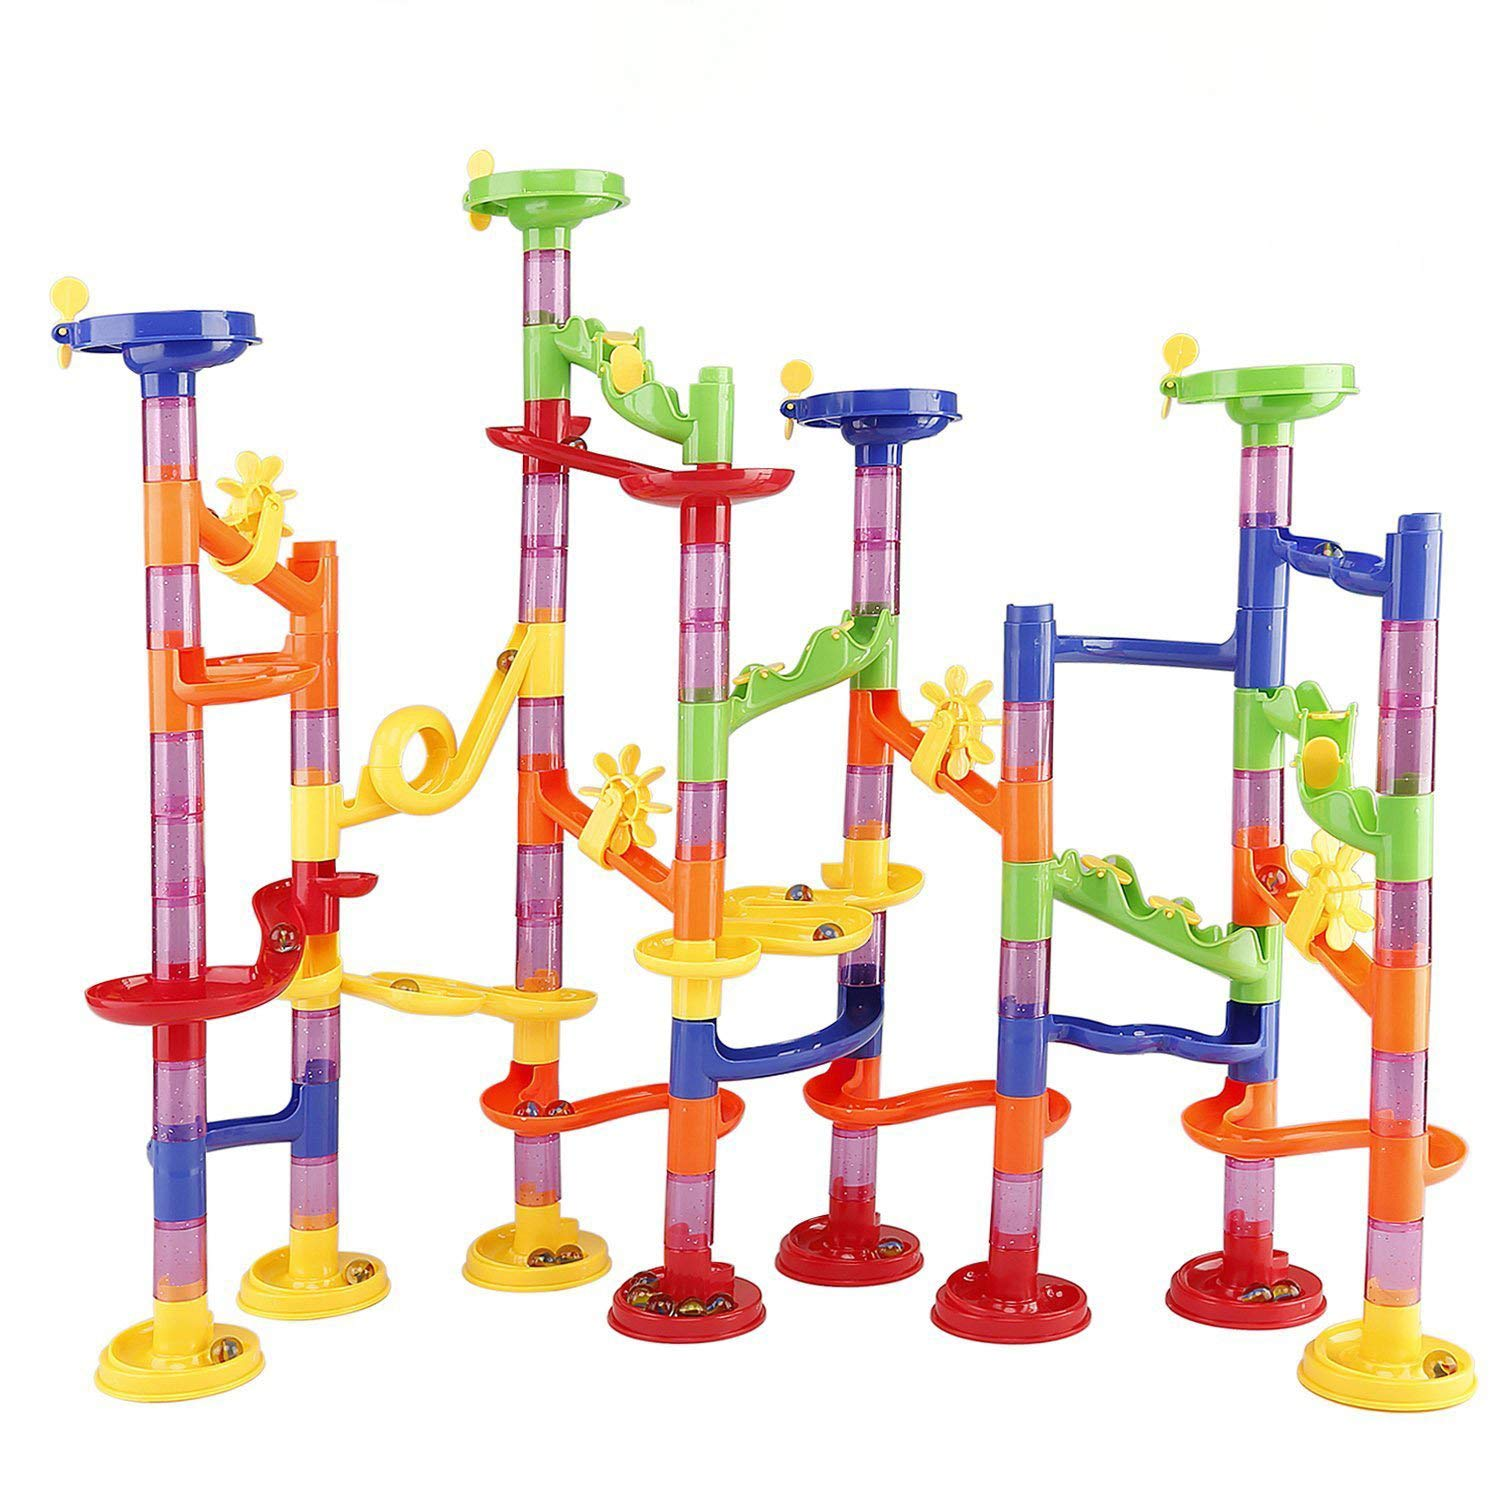 Newooe Marble Run Railway Toy DIY Building Blocks Marble Runs Coaster Railway Construction Marble Game for Kids Children Gift Toy